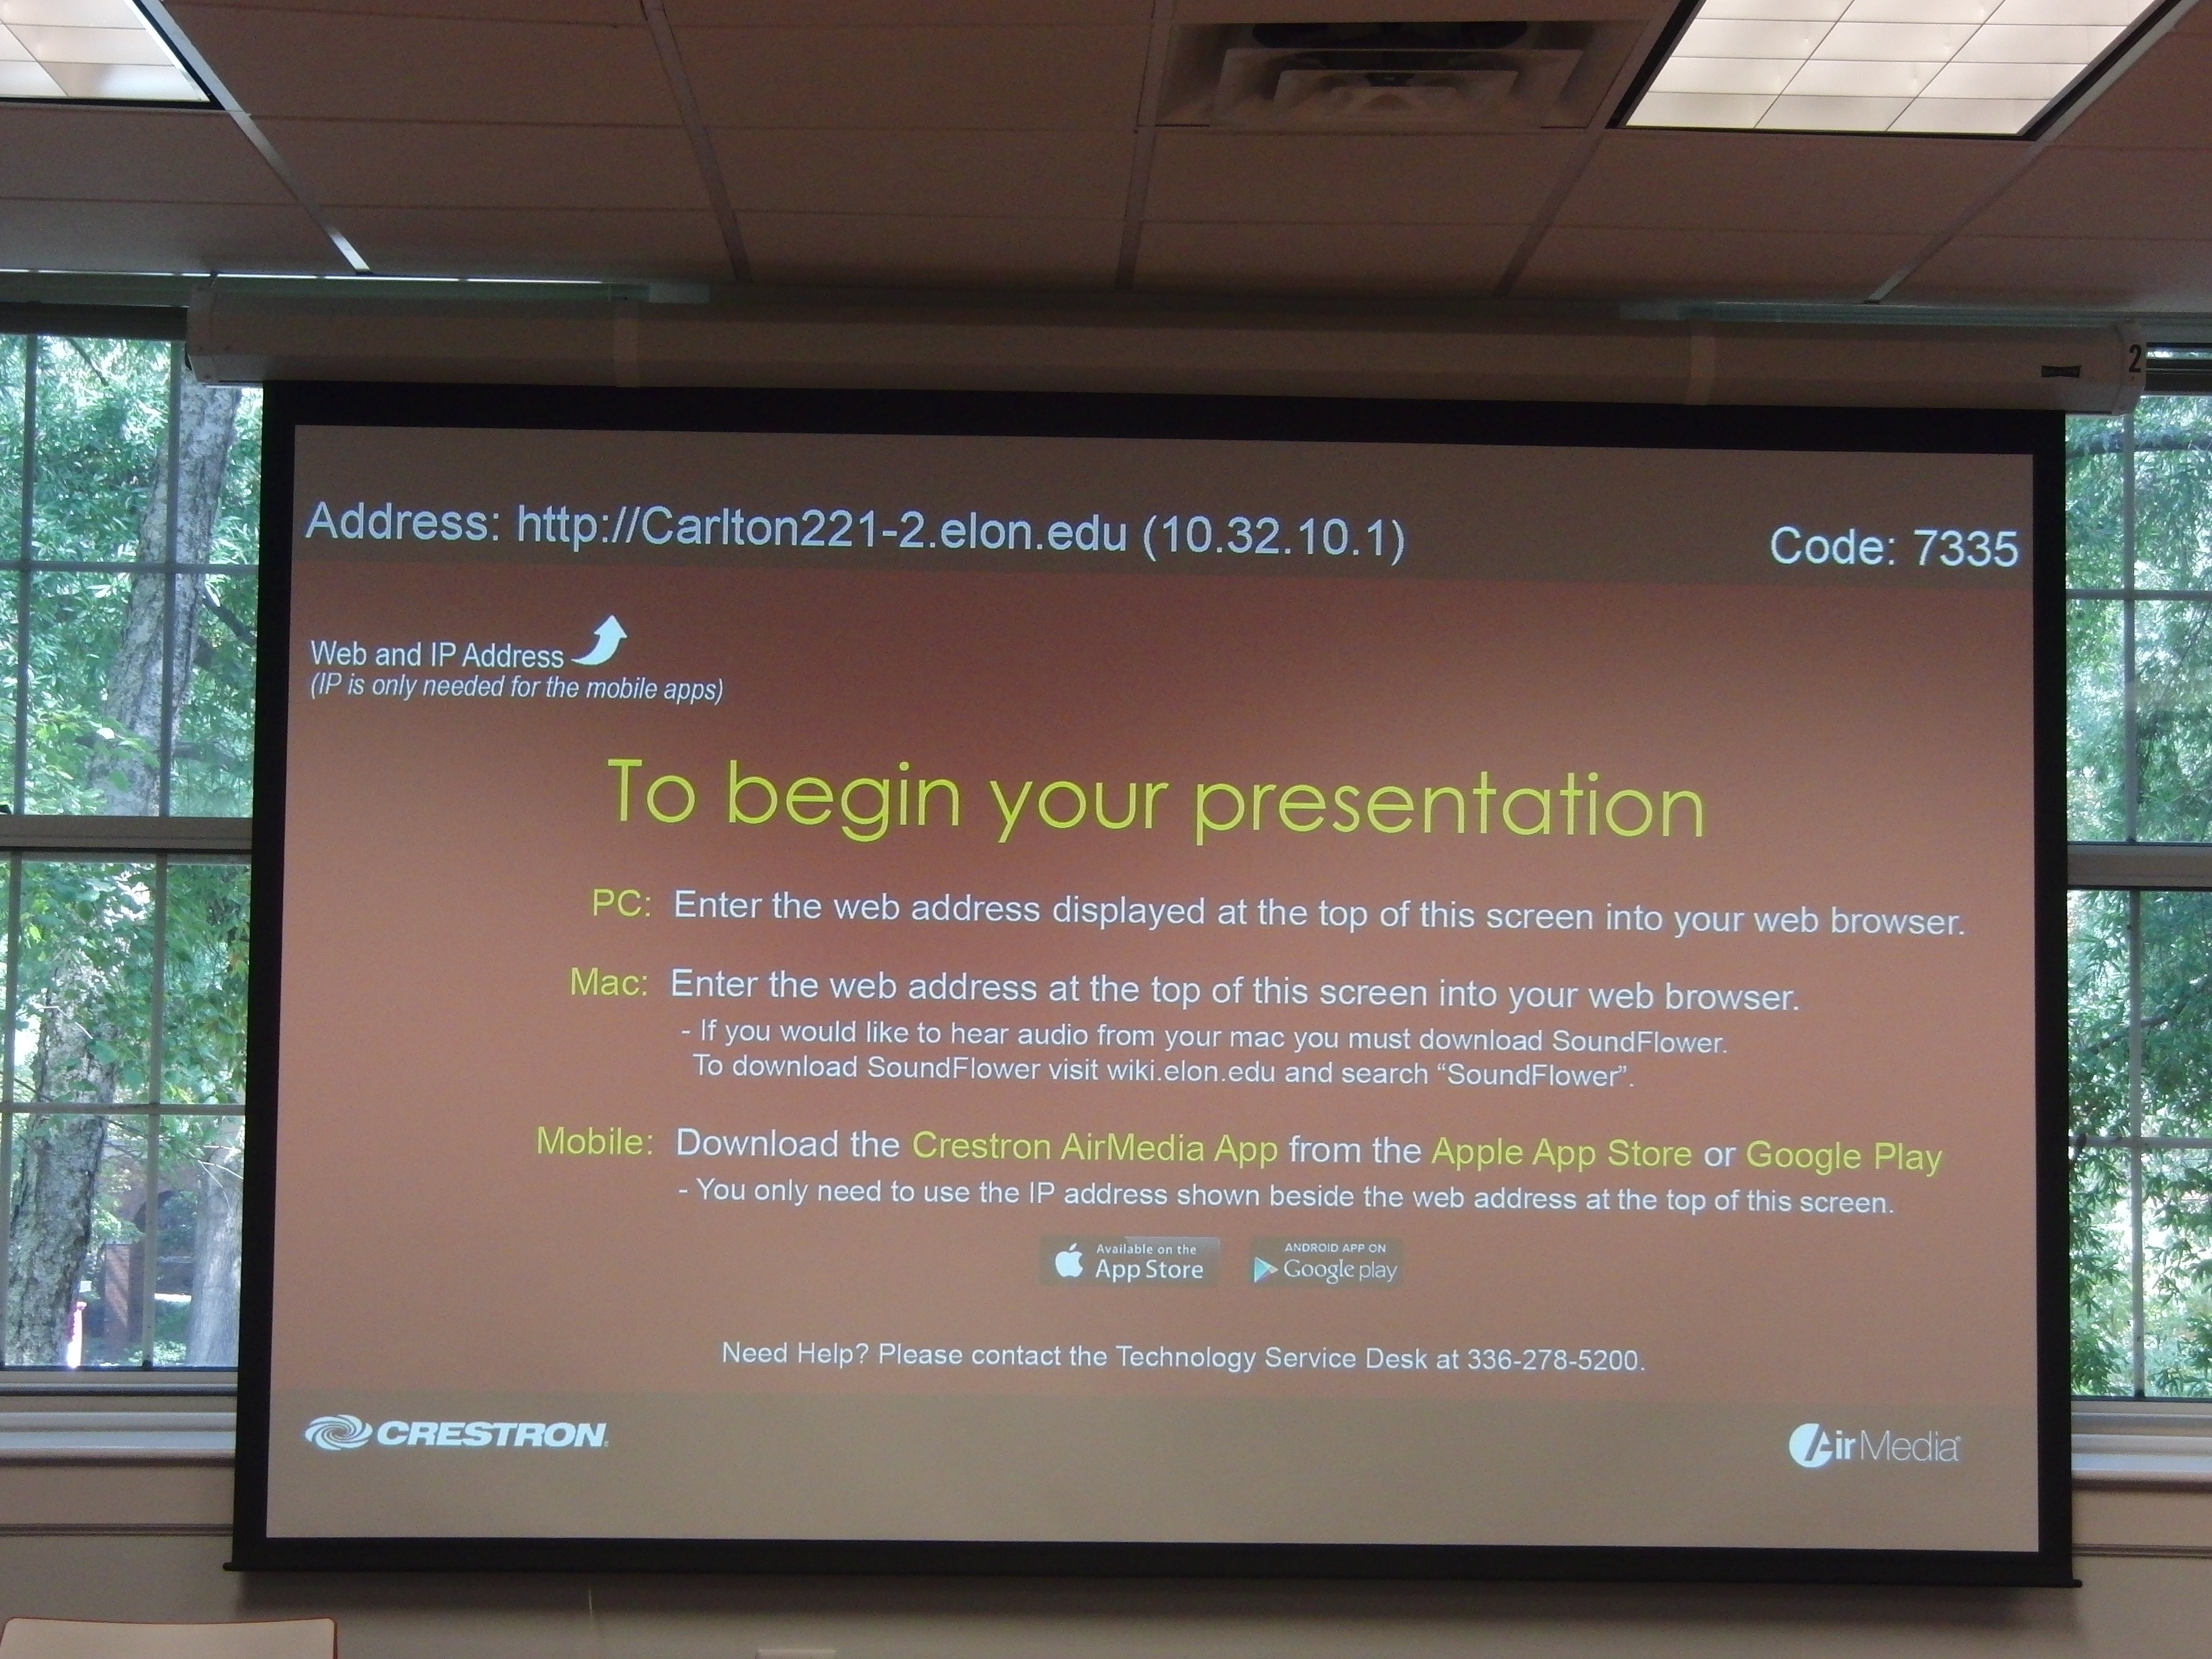 Photo of projection screen noting AirMedia application install information